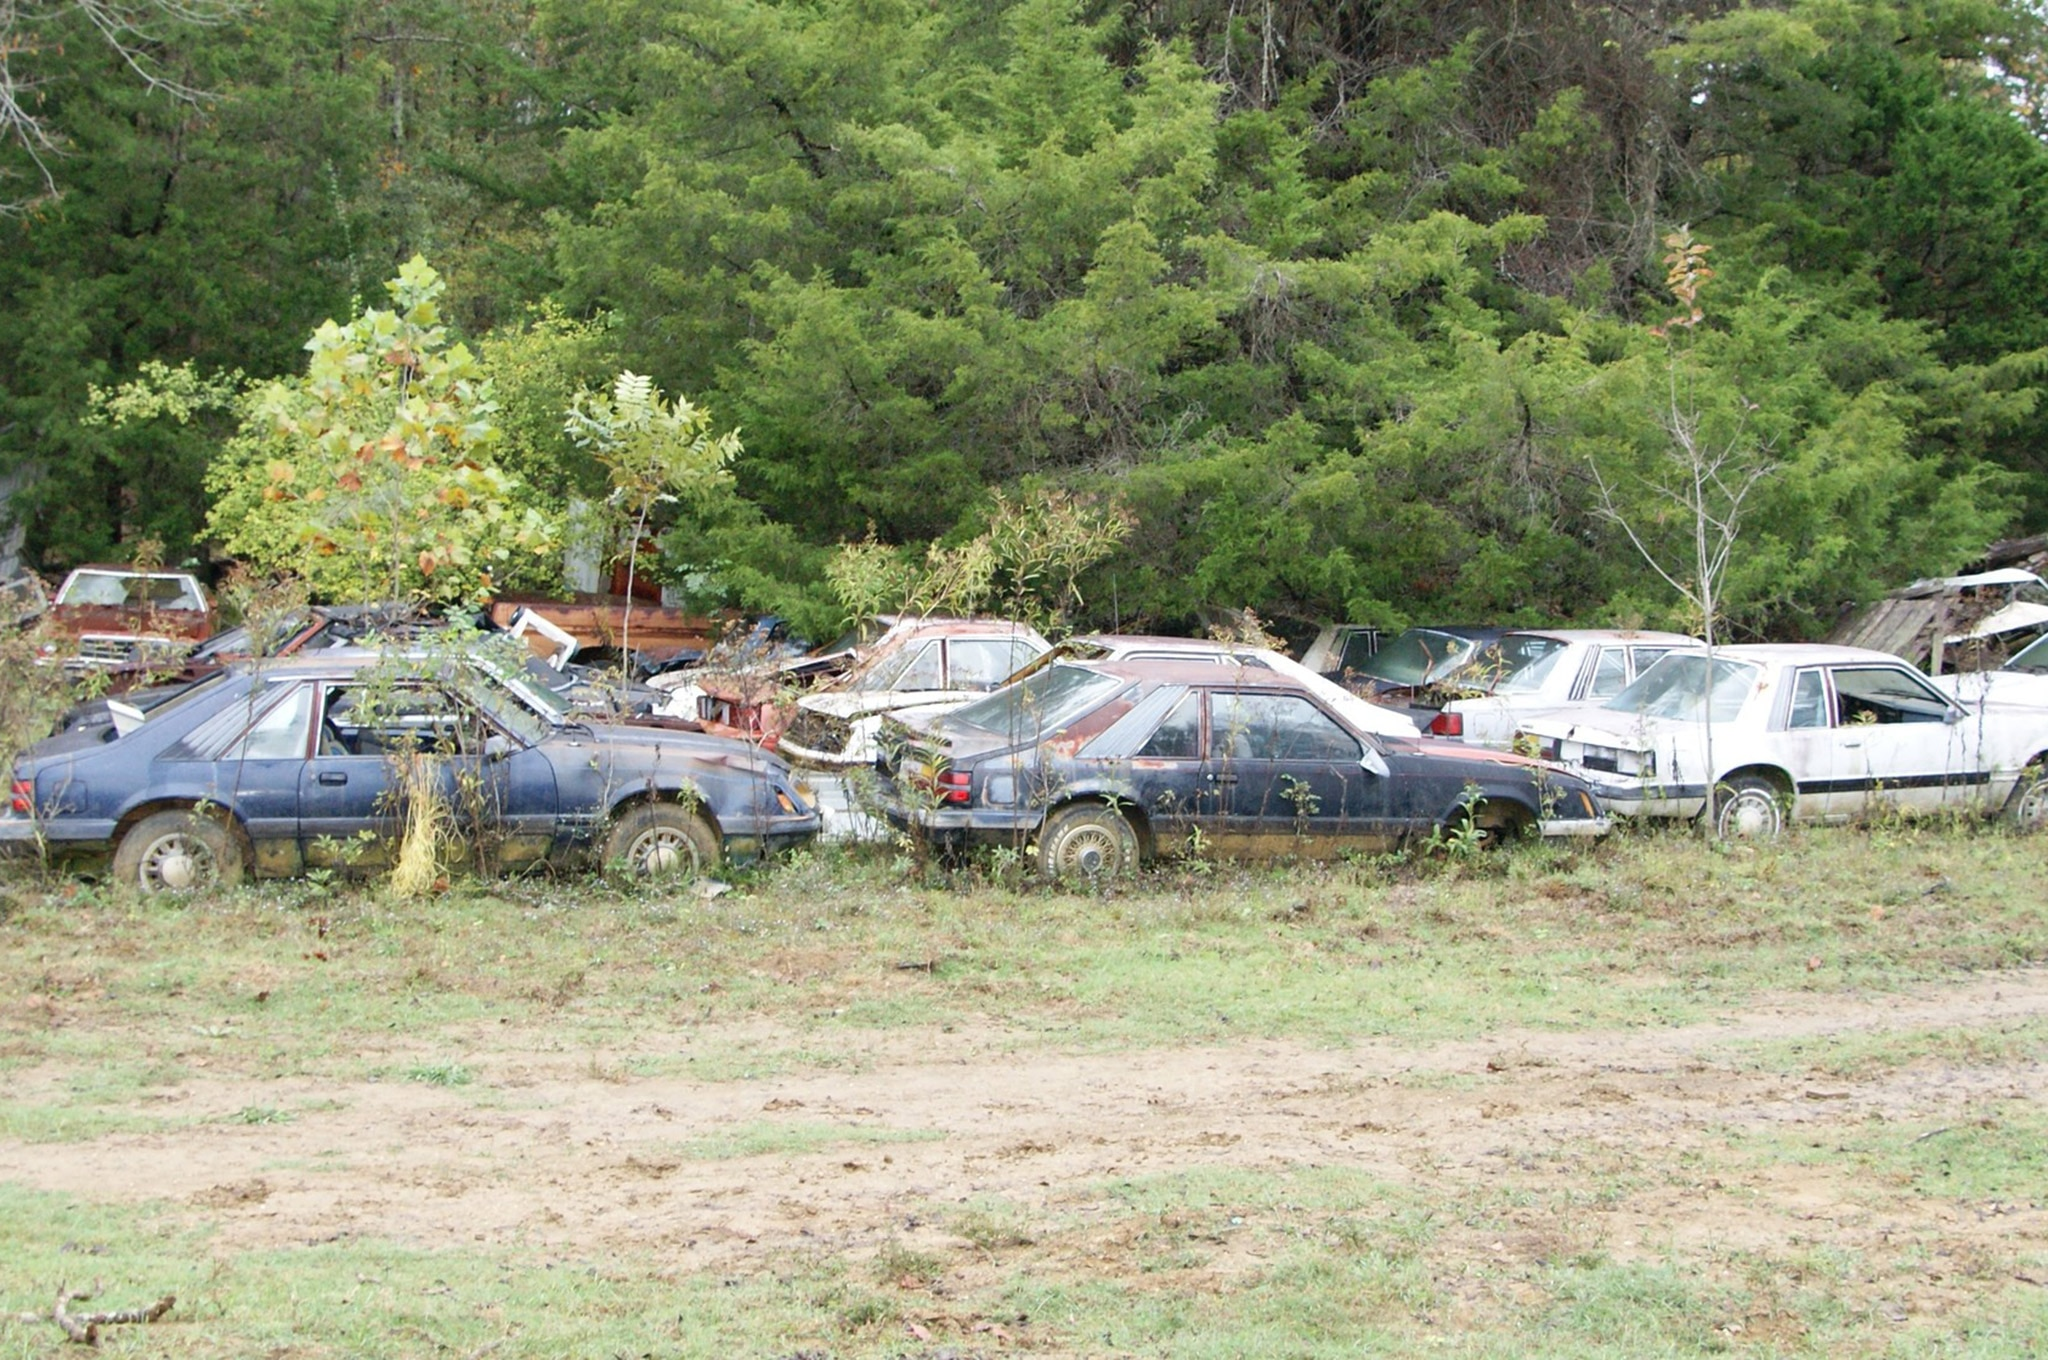 Rare Field Finds Fords Mustangs Trucks Parts 04